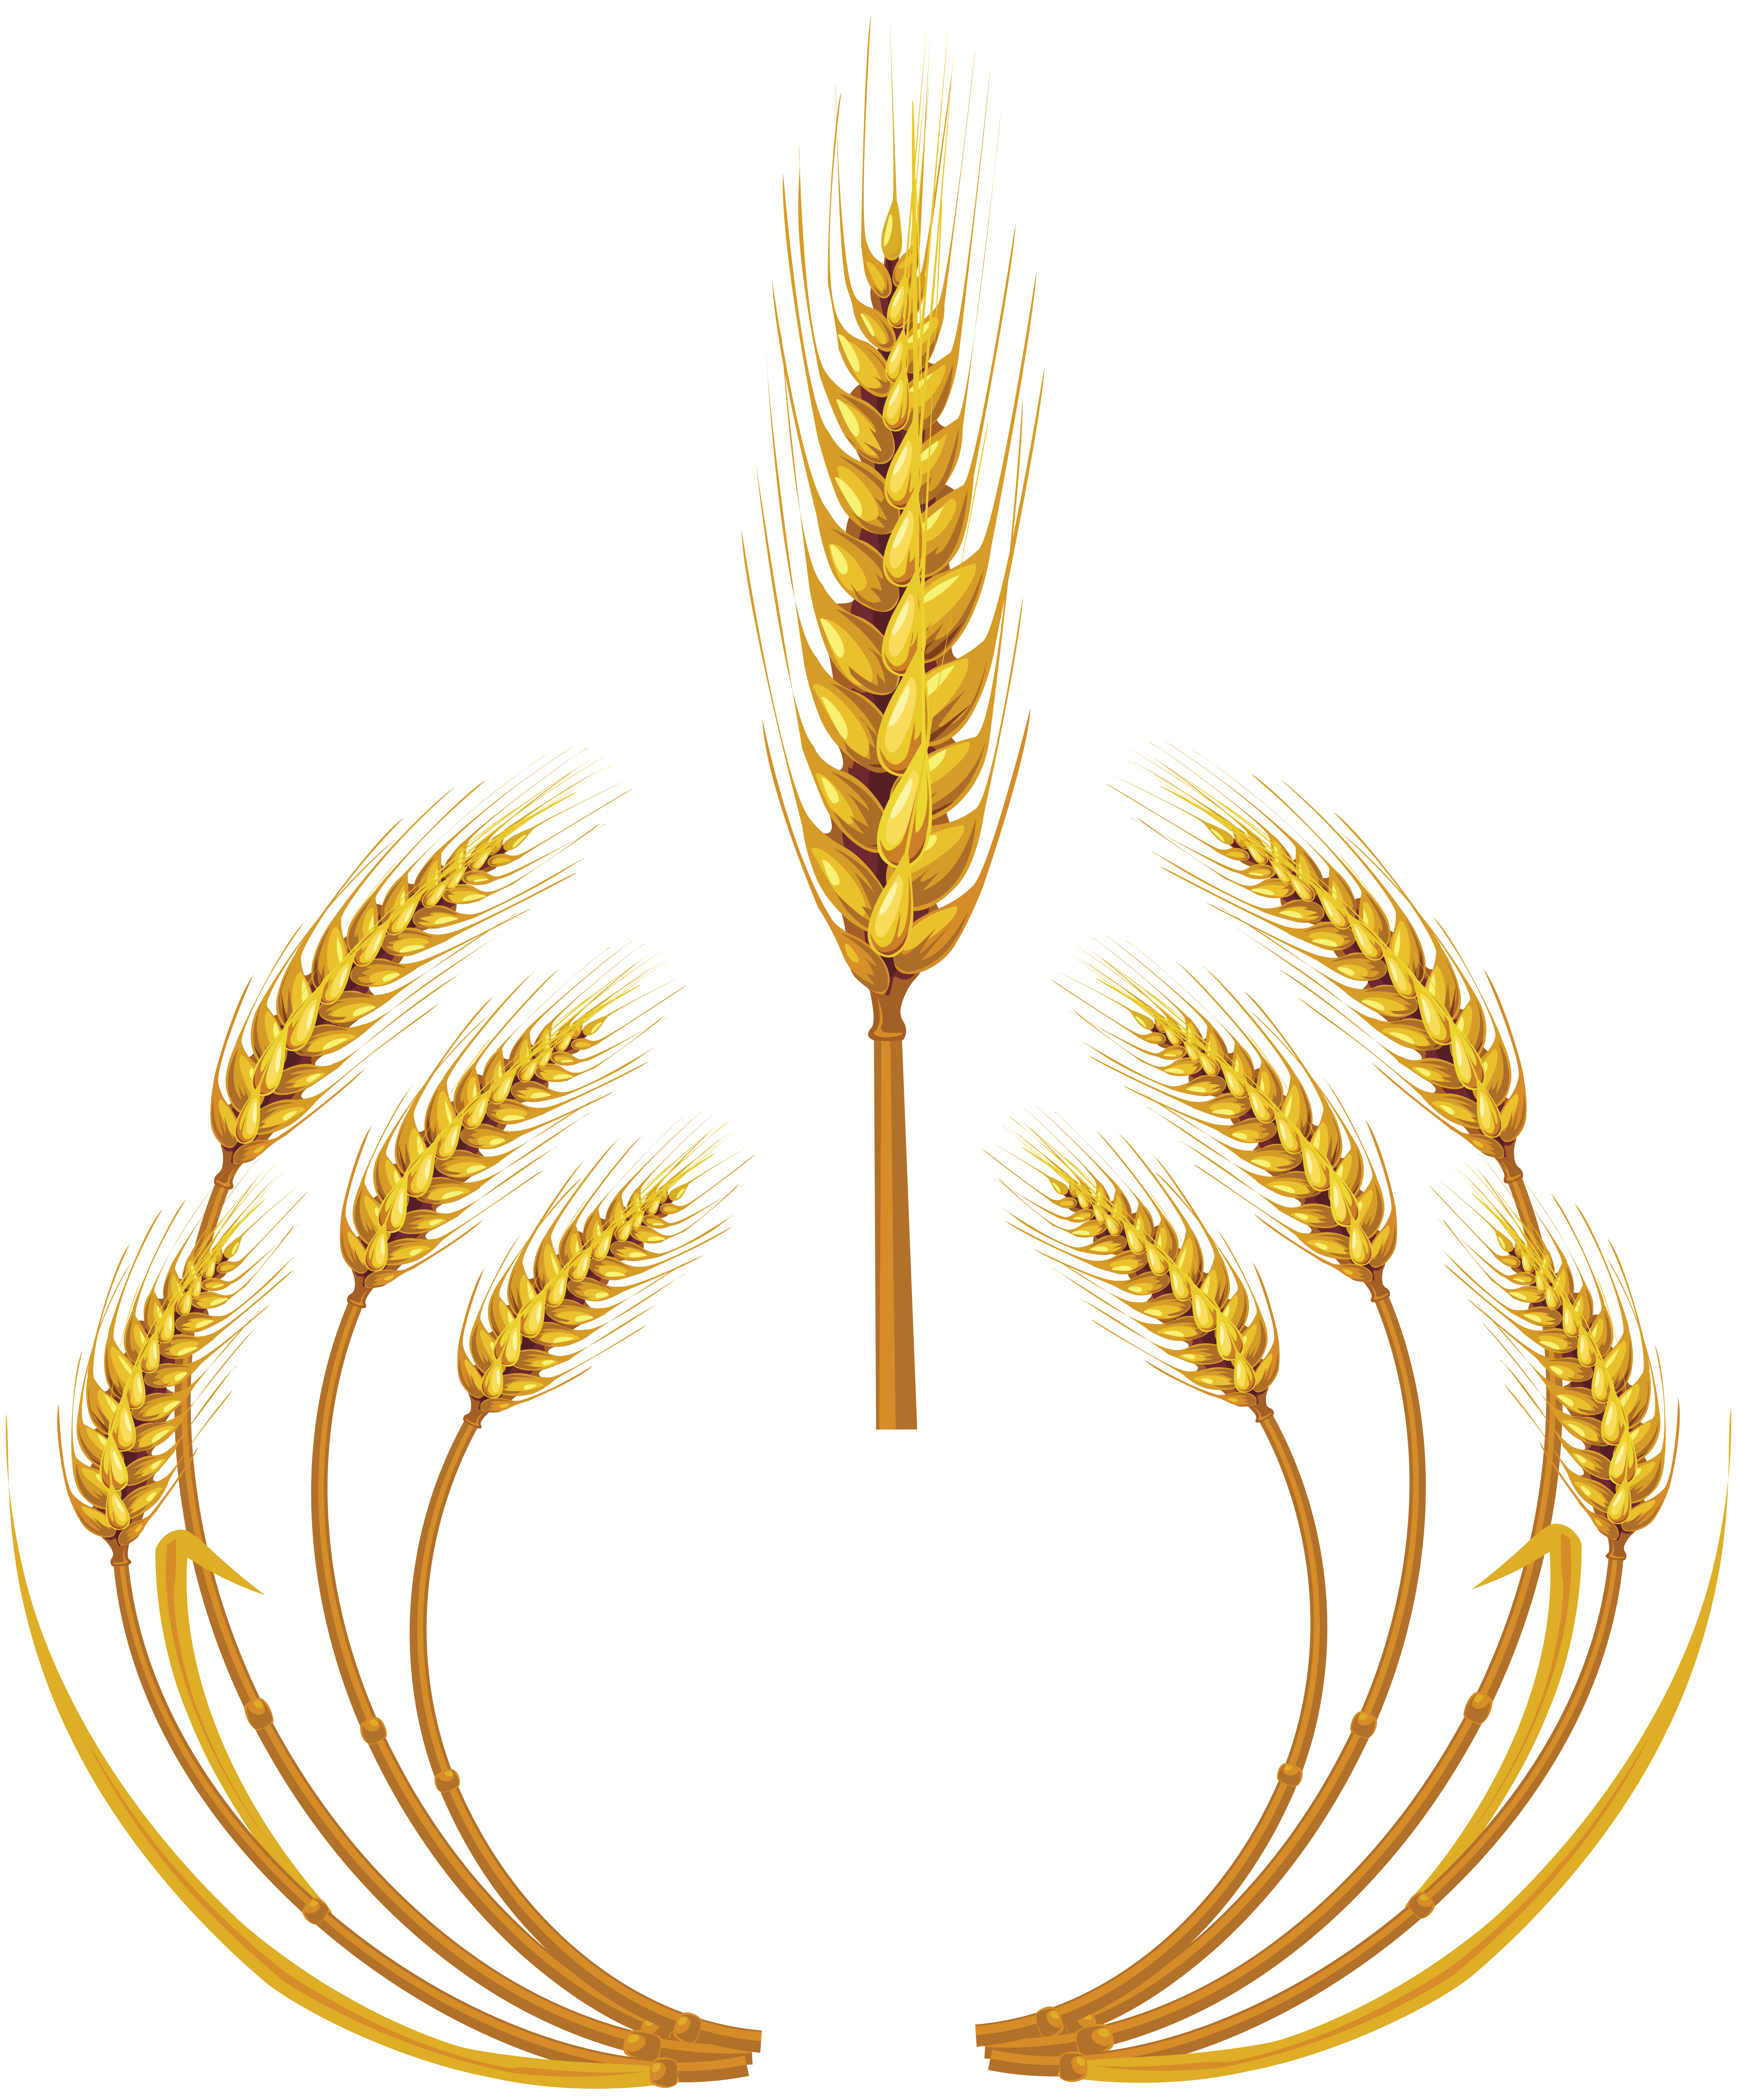 Wheat Logo Png